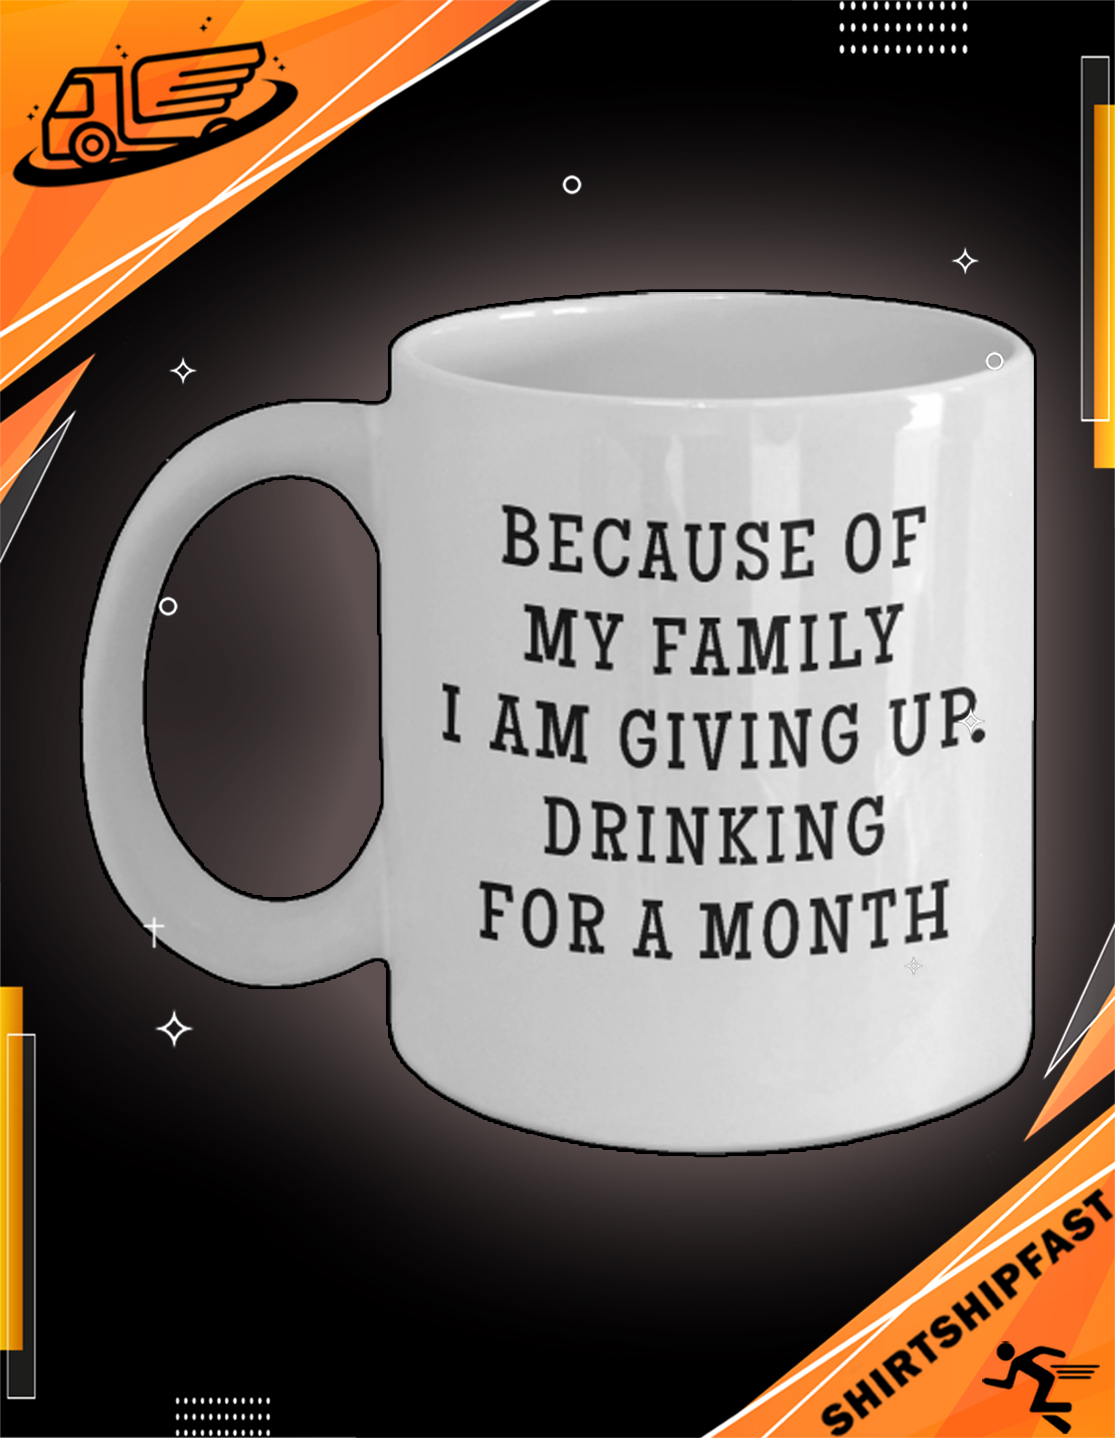 Because of my family I am giving up drinking for a month mug - Picture 2